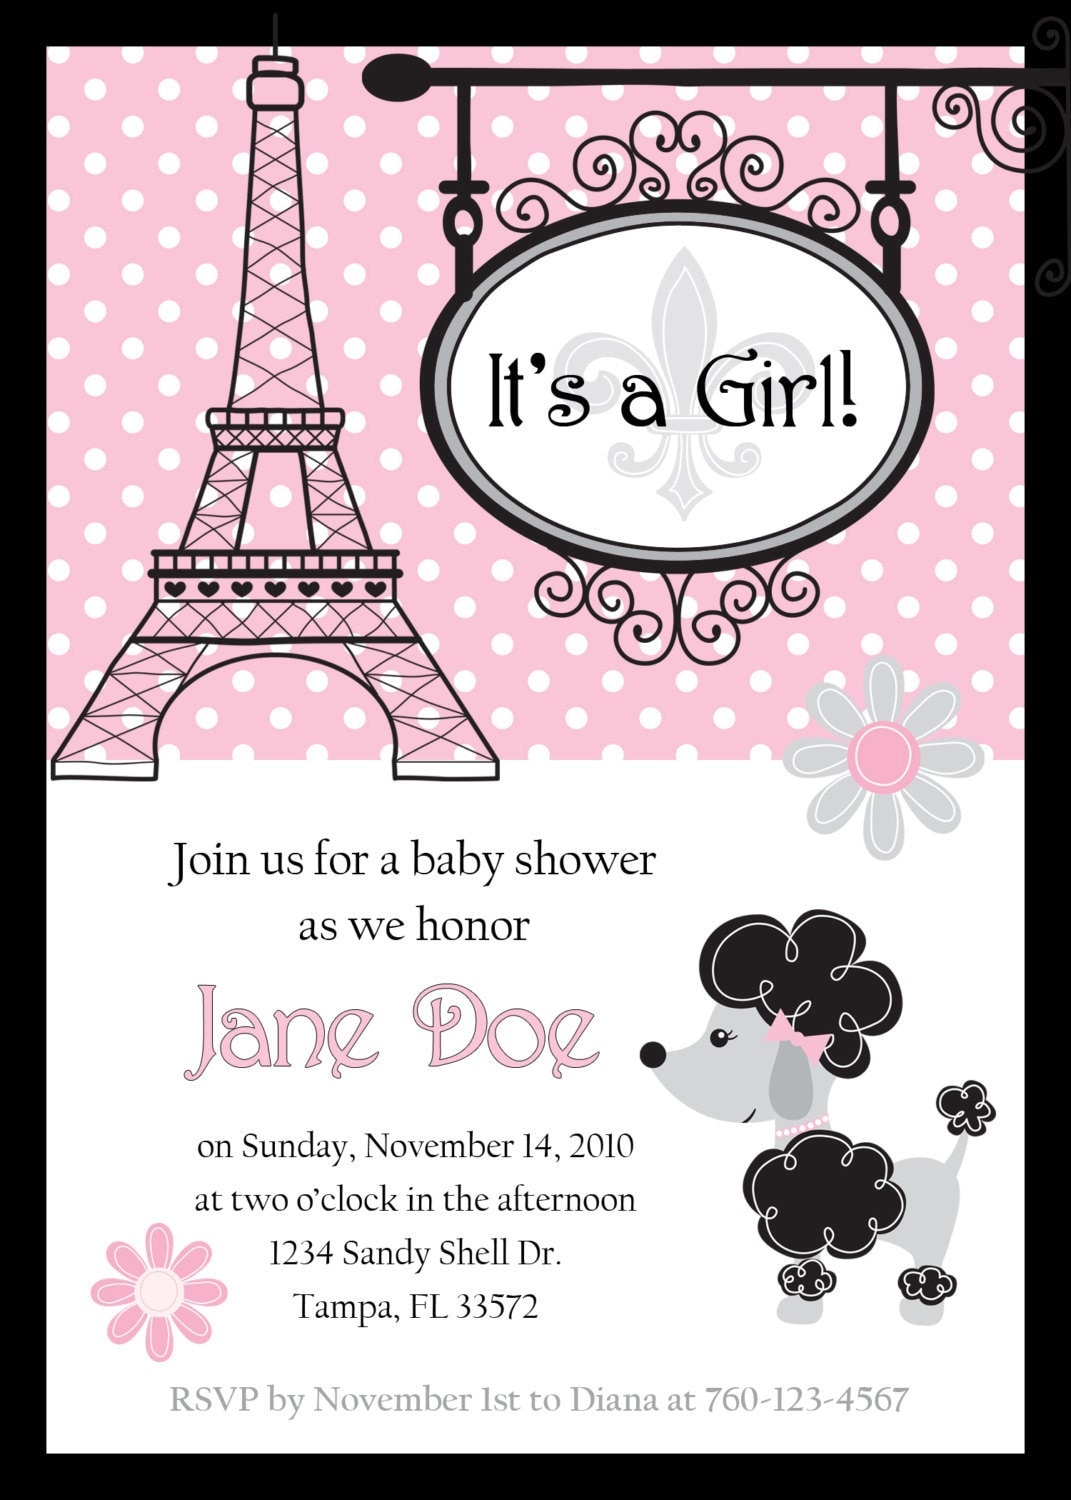 Make Your Own Baby Shower Invites is beautiful invitations example